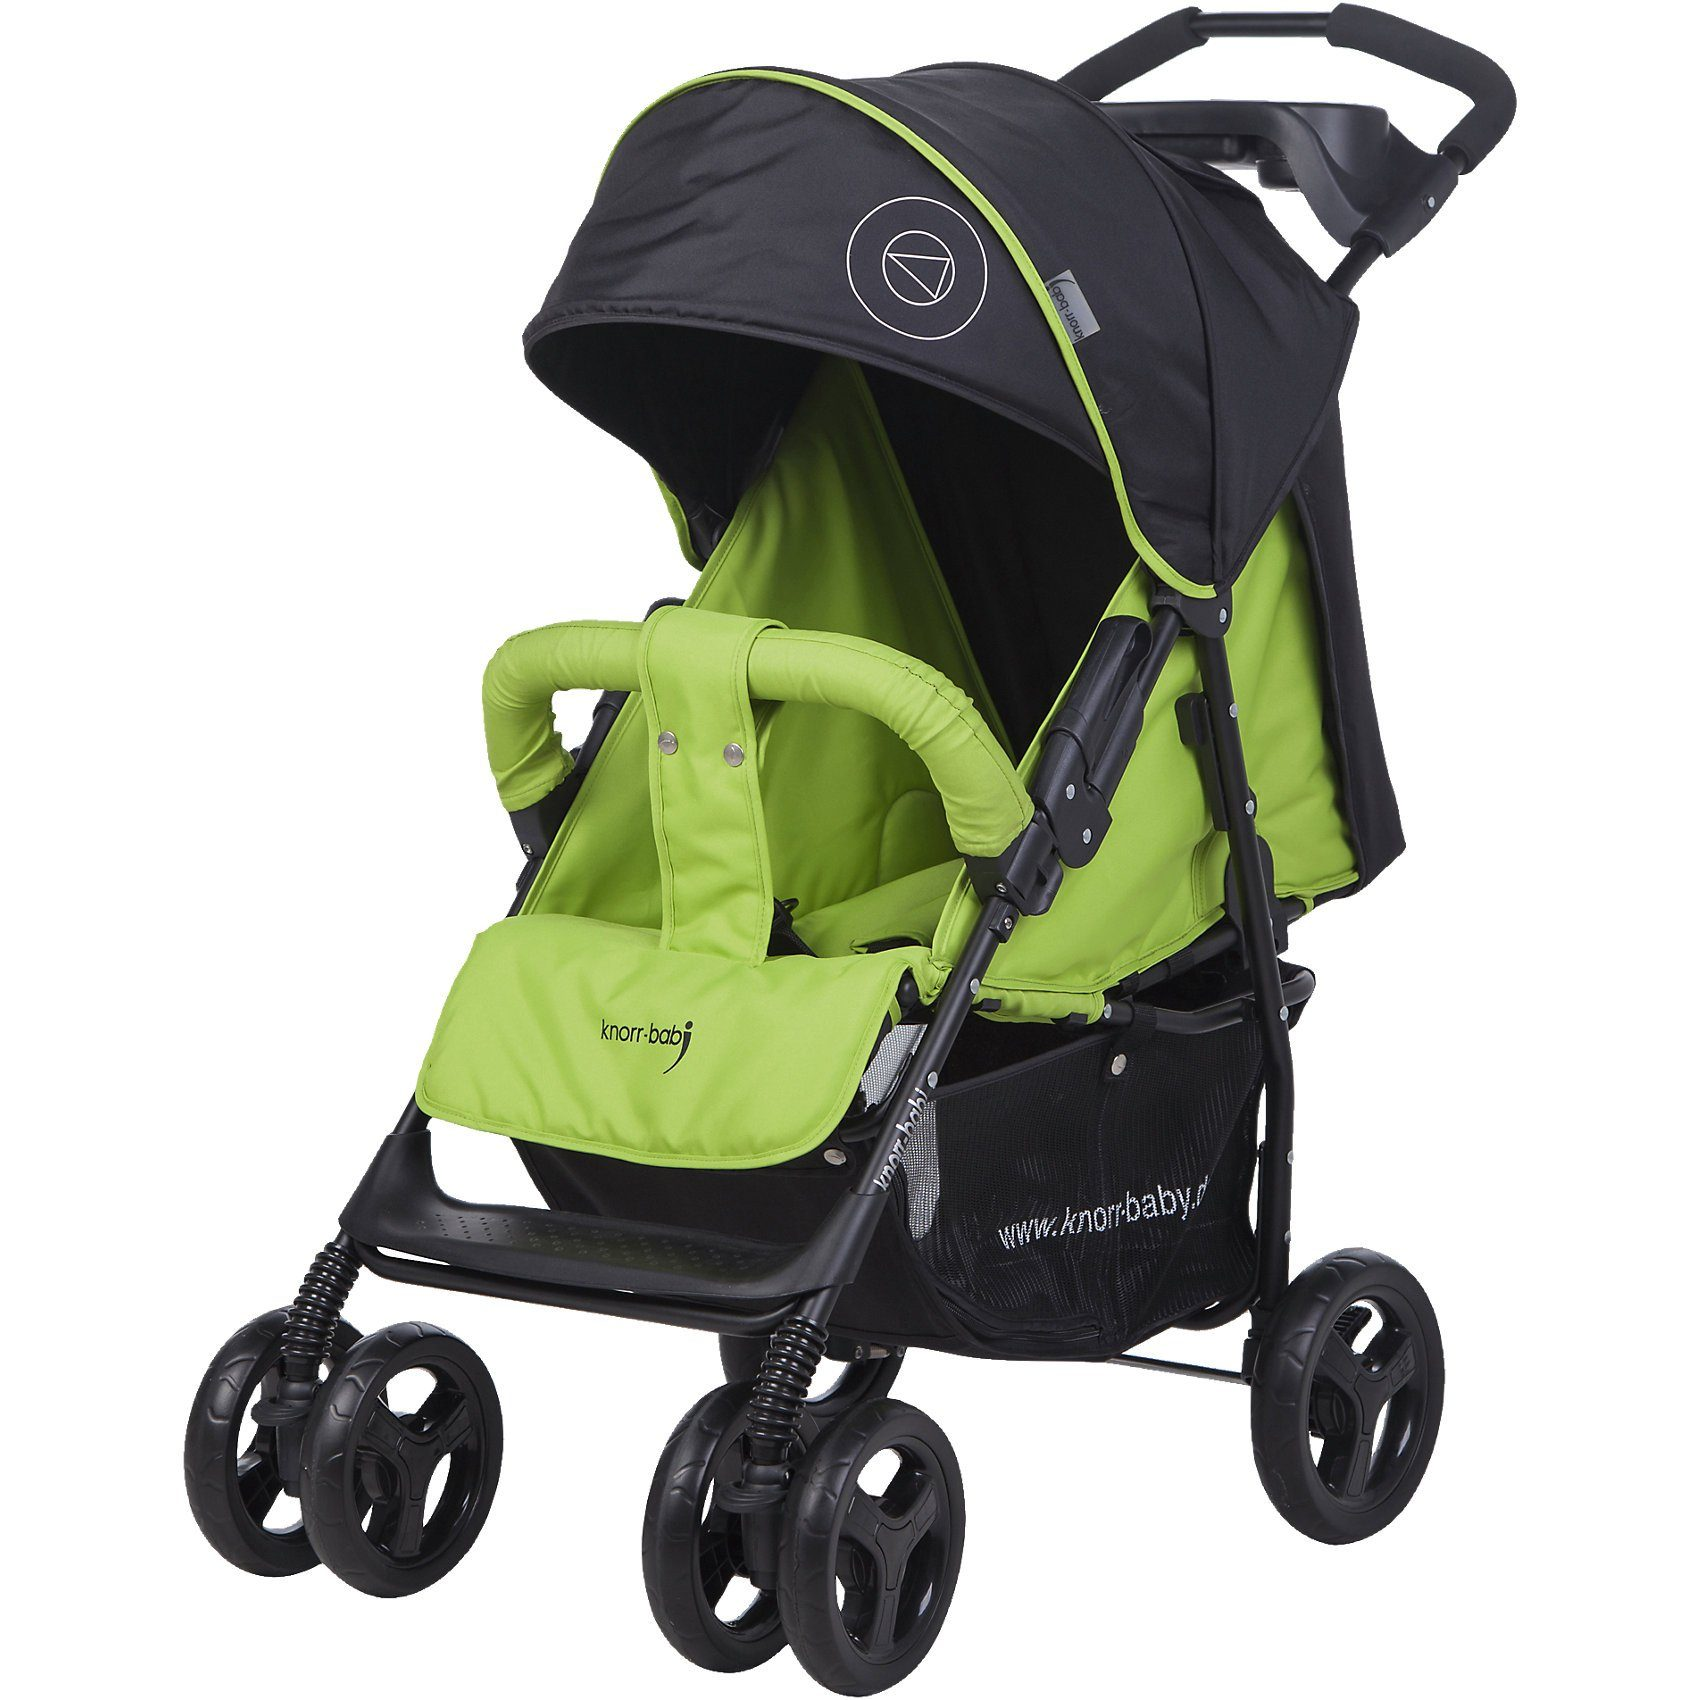 knorr-baby Sportwagen Vero XL Happy Colour, grün